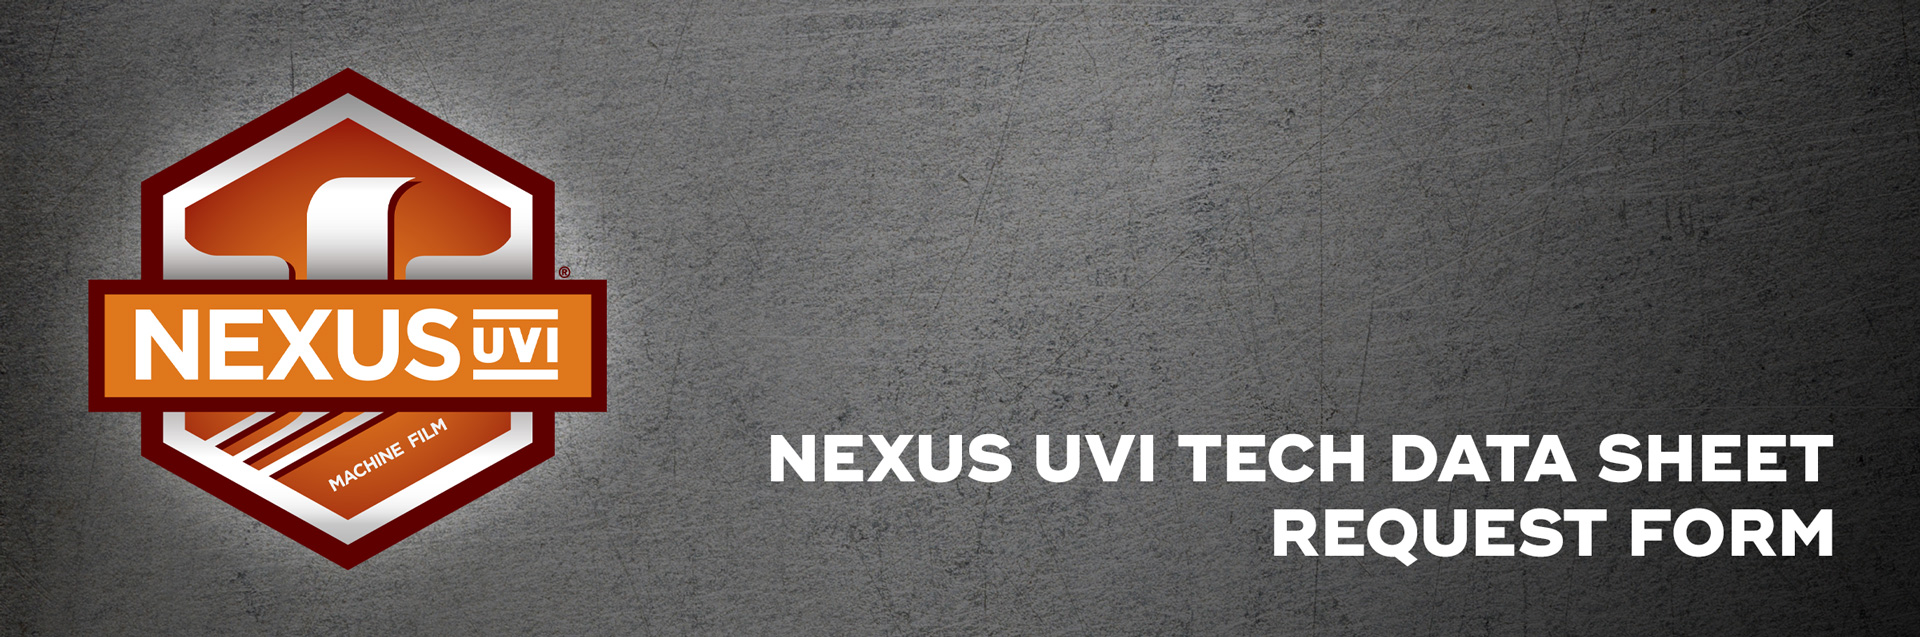 Nexus-UVI-Tech-Data-Sheet-Request-Form